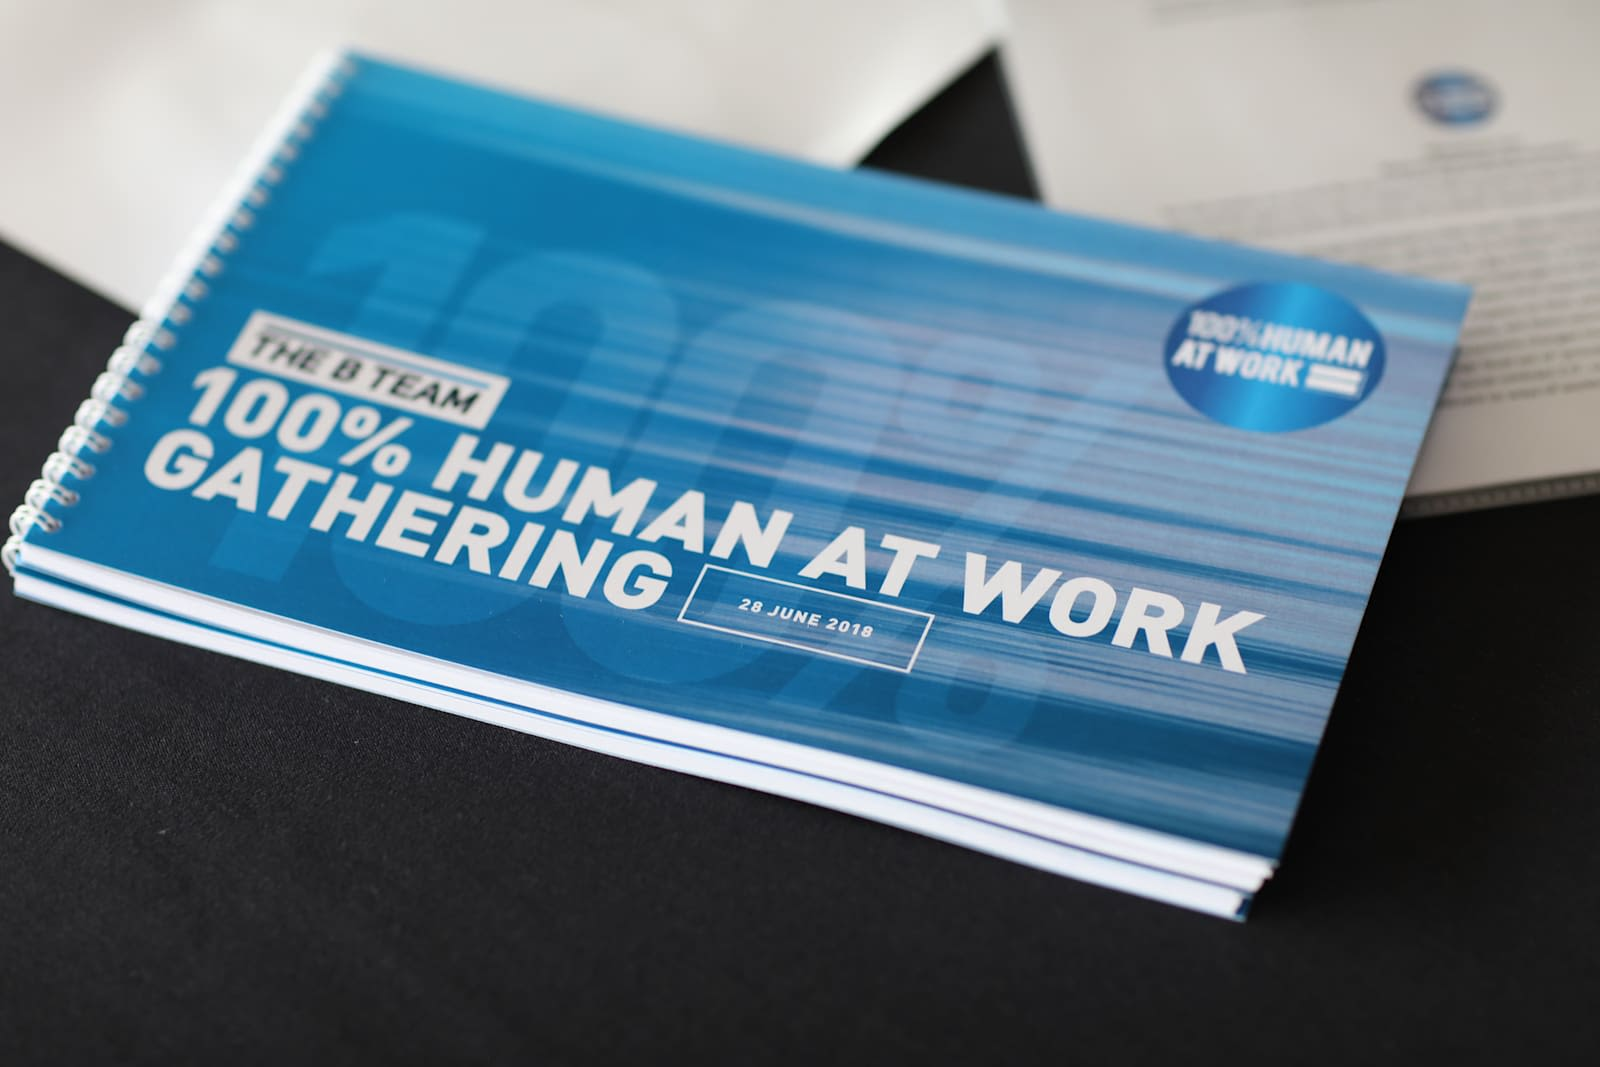 A small, blue booklet from The B Team about their 100% Human at Work initiative. In white on the front cover it says '100% Human at Work Gathering'